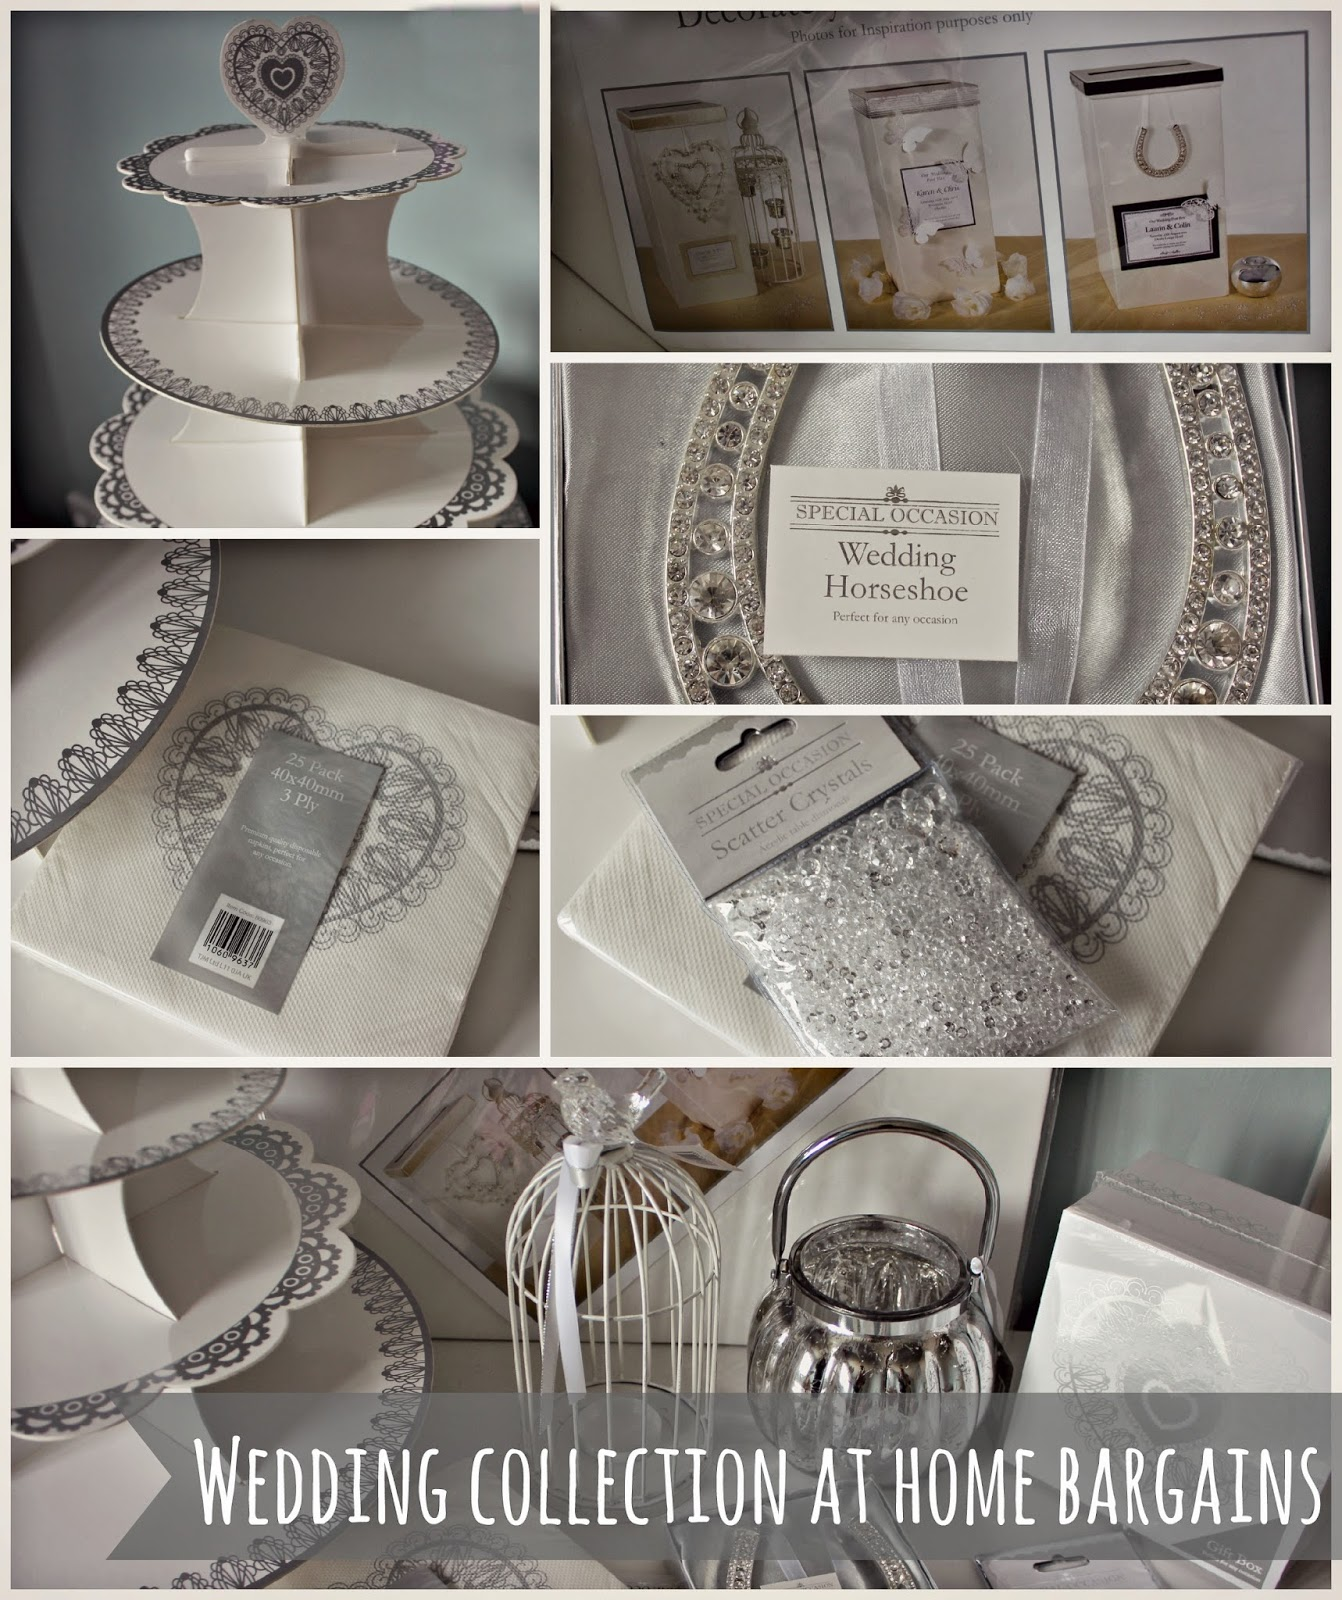 Homebargains wedding range k elizabeth i was also sent a card board cake stand napkins scatter crystals a traditional wedding horse shoe and a wedding card post box junglespirit Image collections